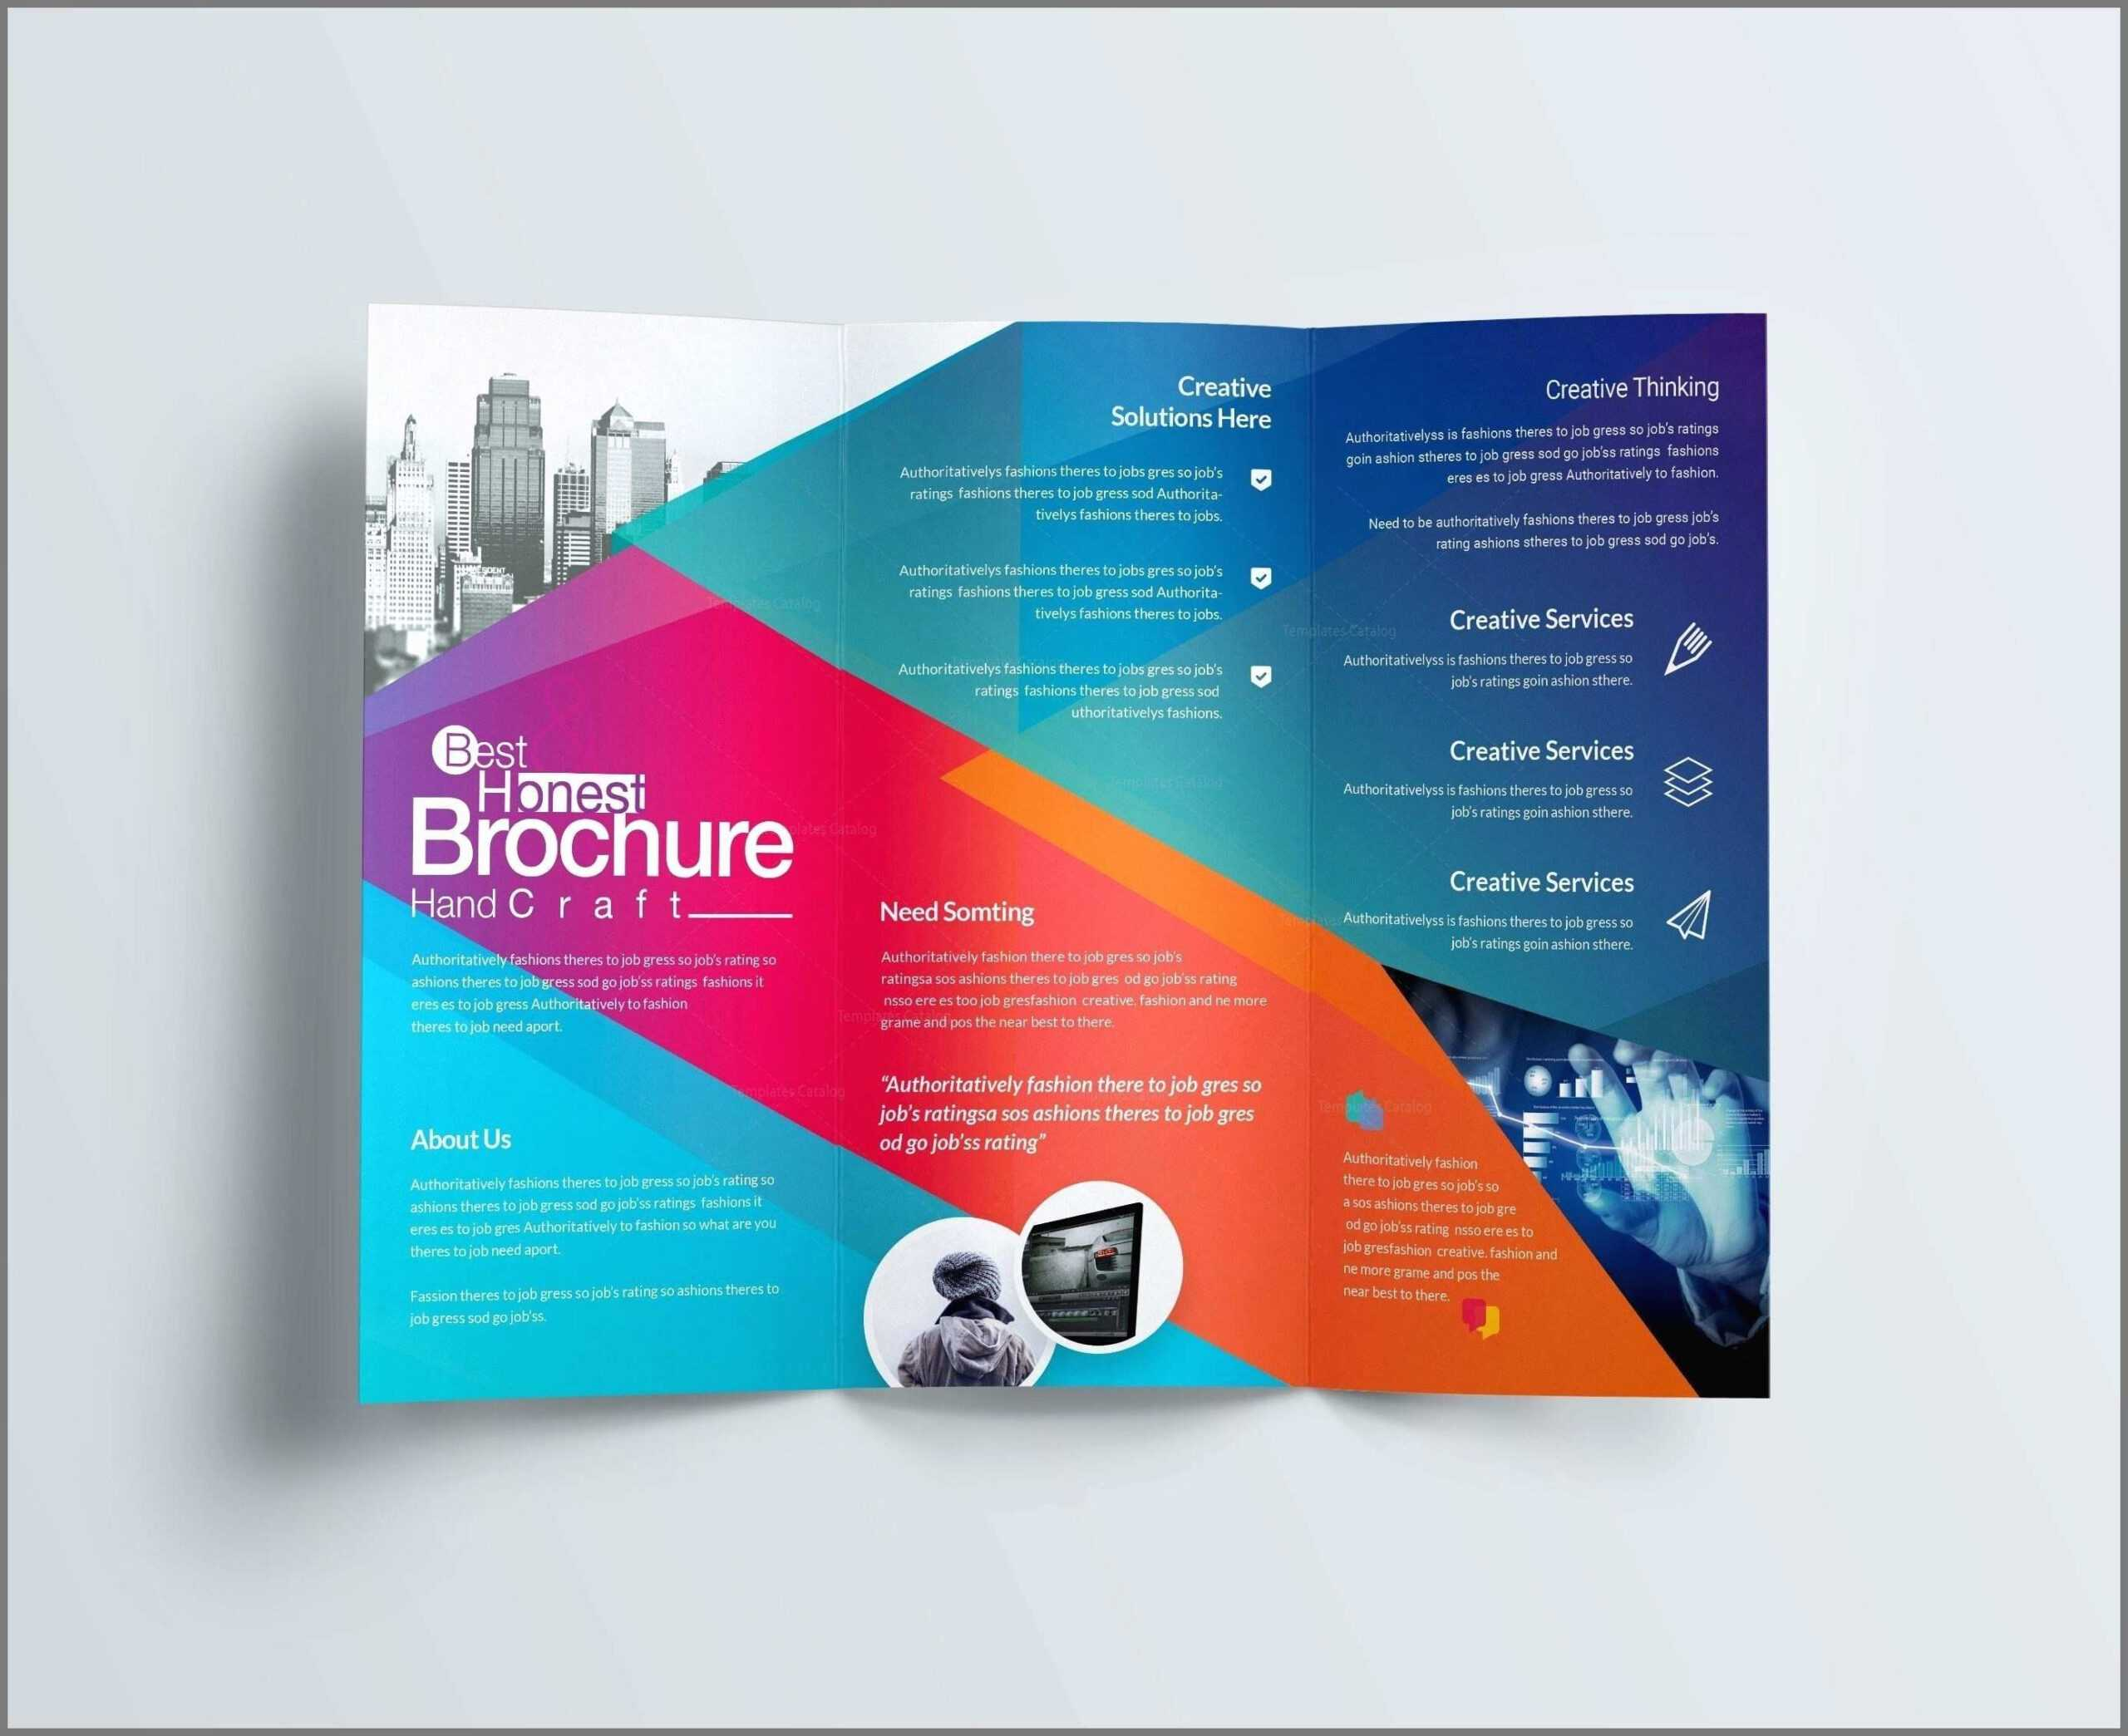 Free Church Brochure Templates For Microsoft Word Throughout Free Church Brochure Templates For Microsoft Word